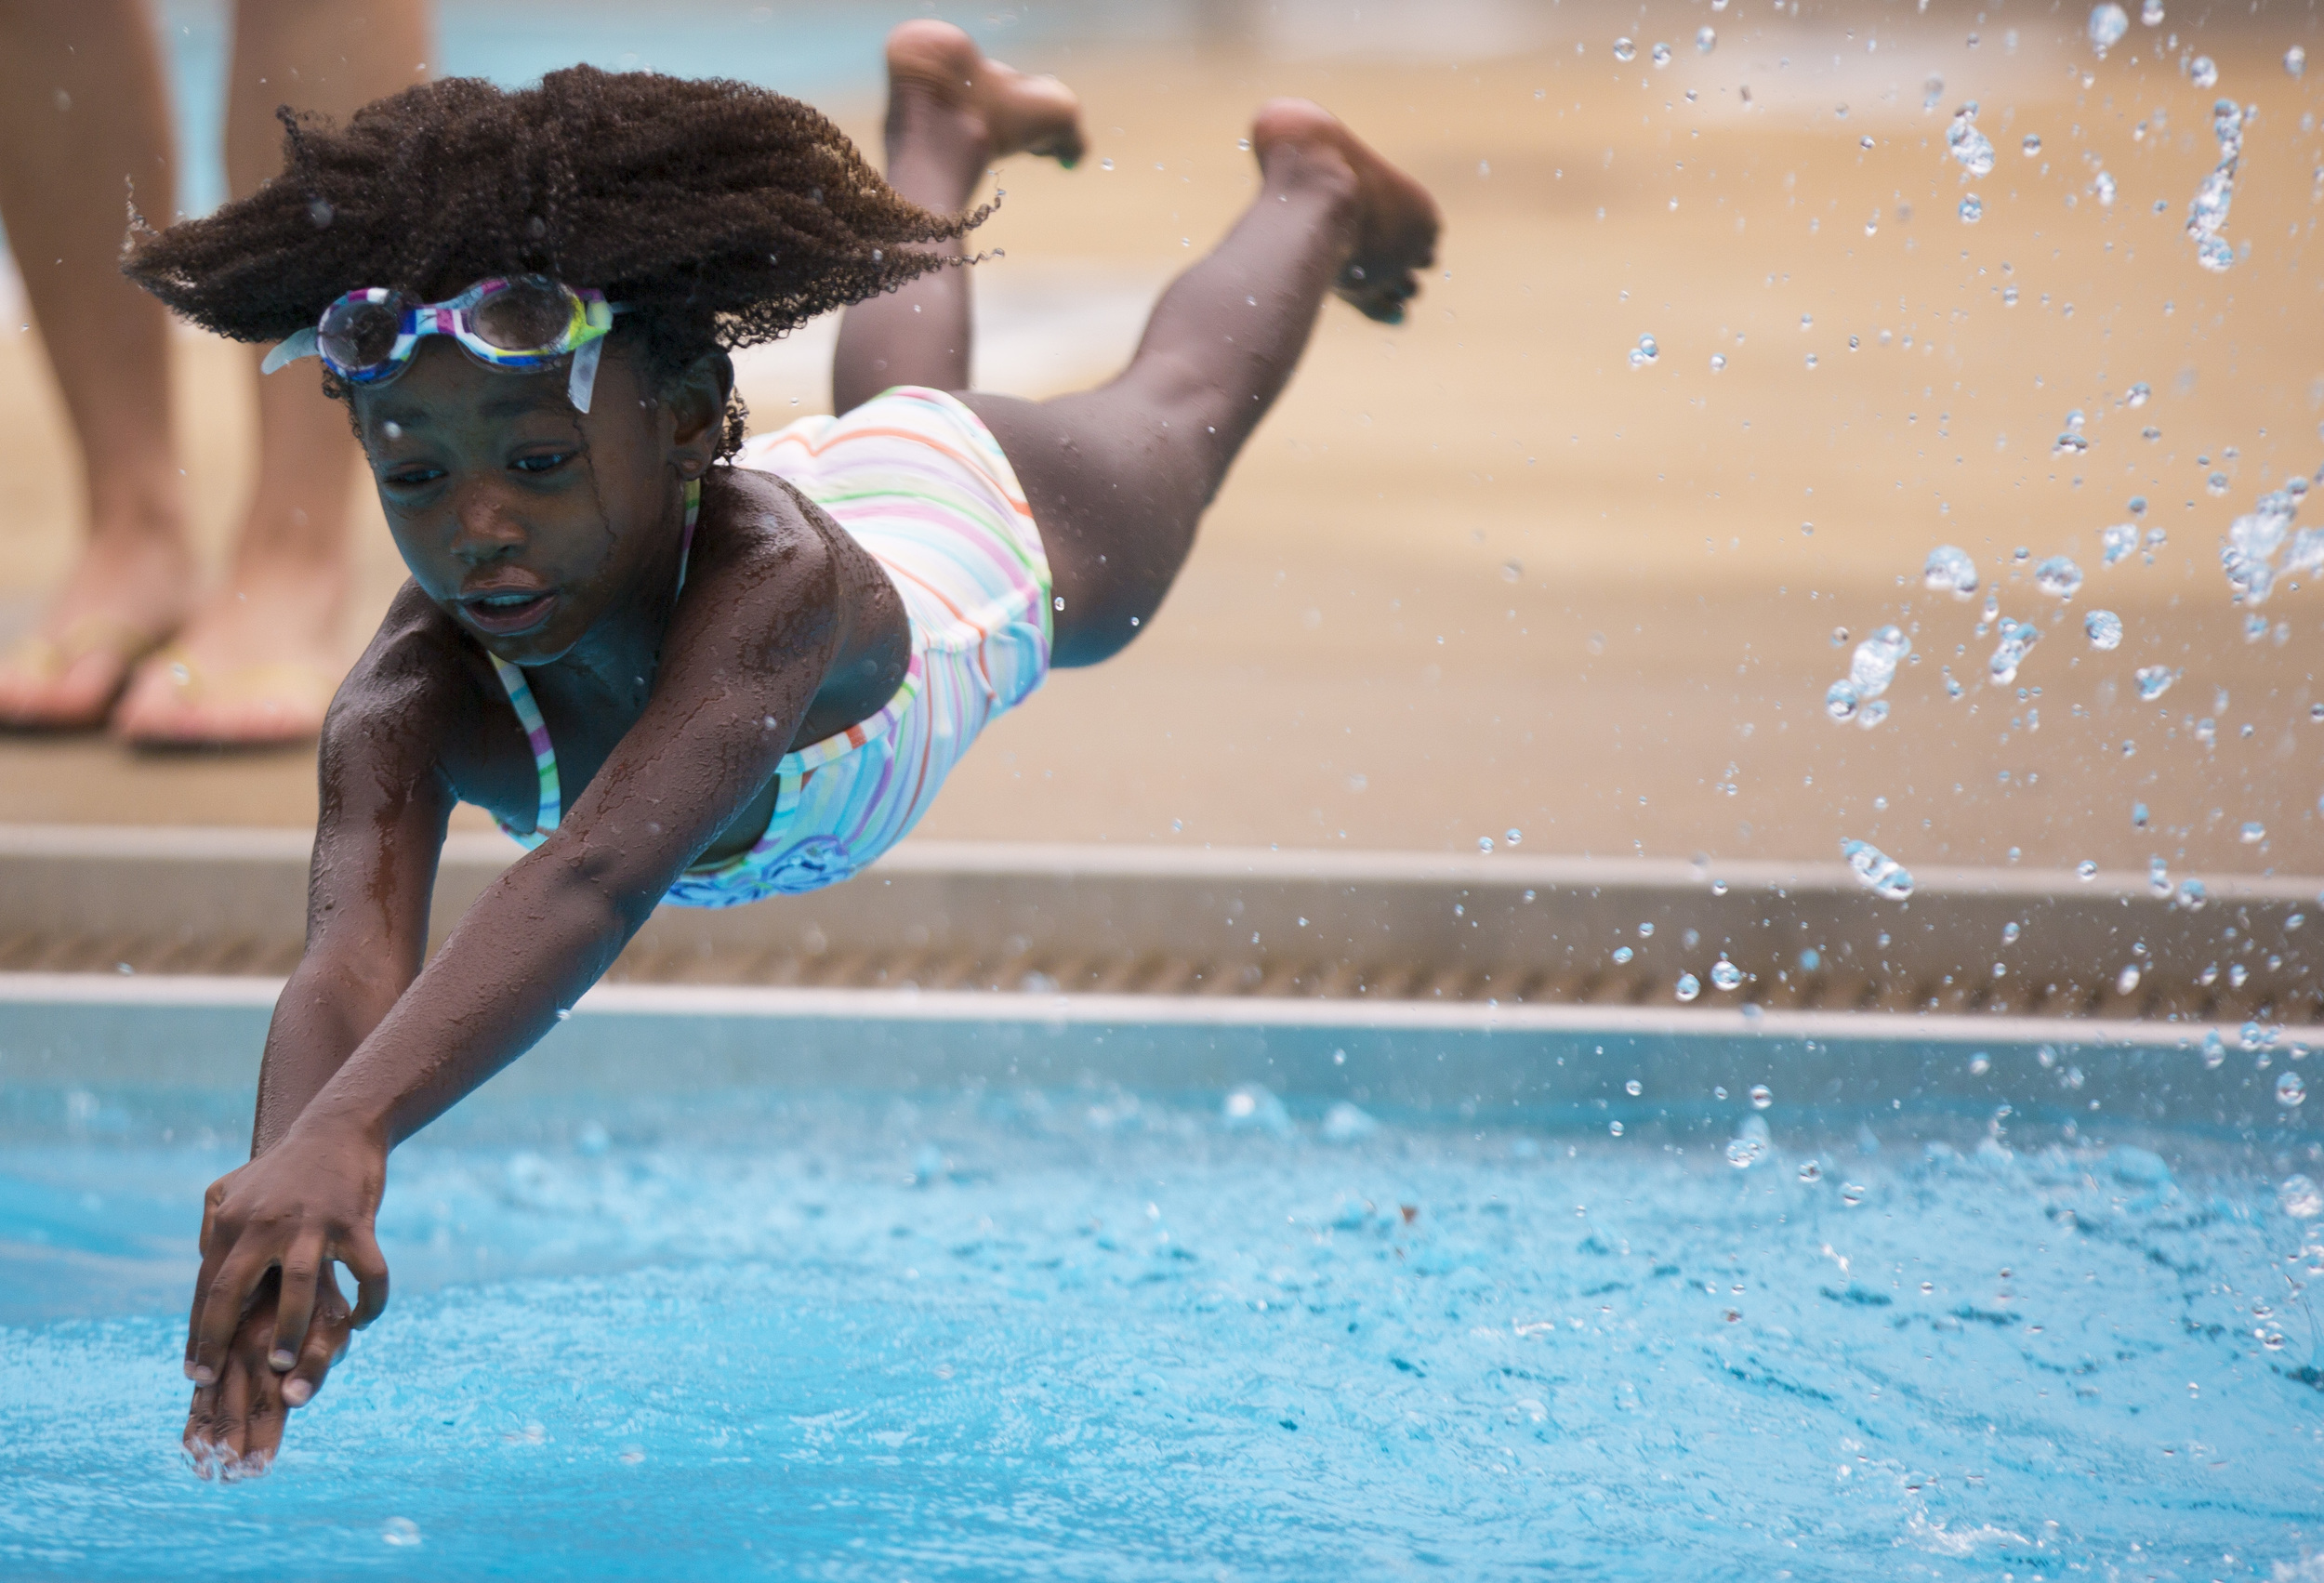 Eloise Sayre, 5, dives into Ridge Road Pool in Raleigh Friday, July 11, 2014. Sayre loves coming to the pool to cool off and play with her friends.